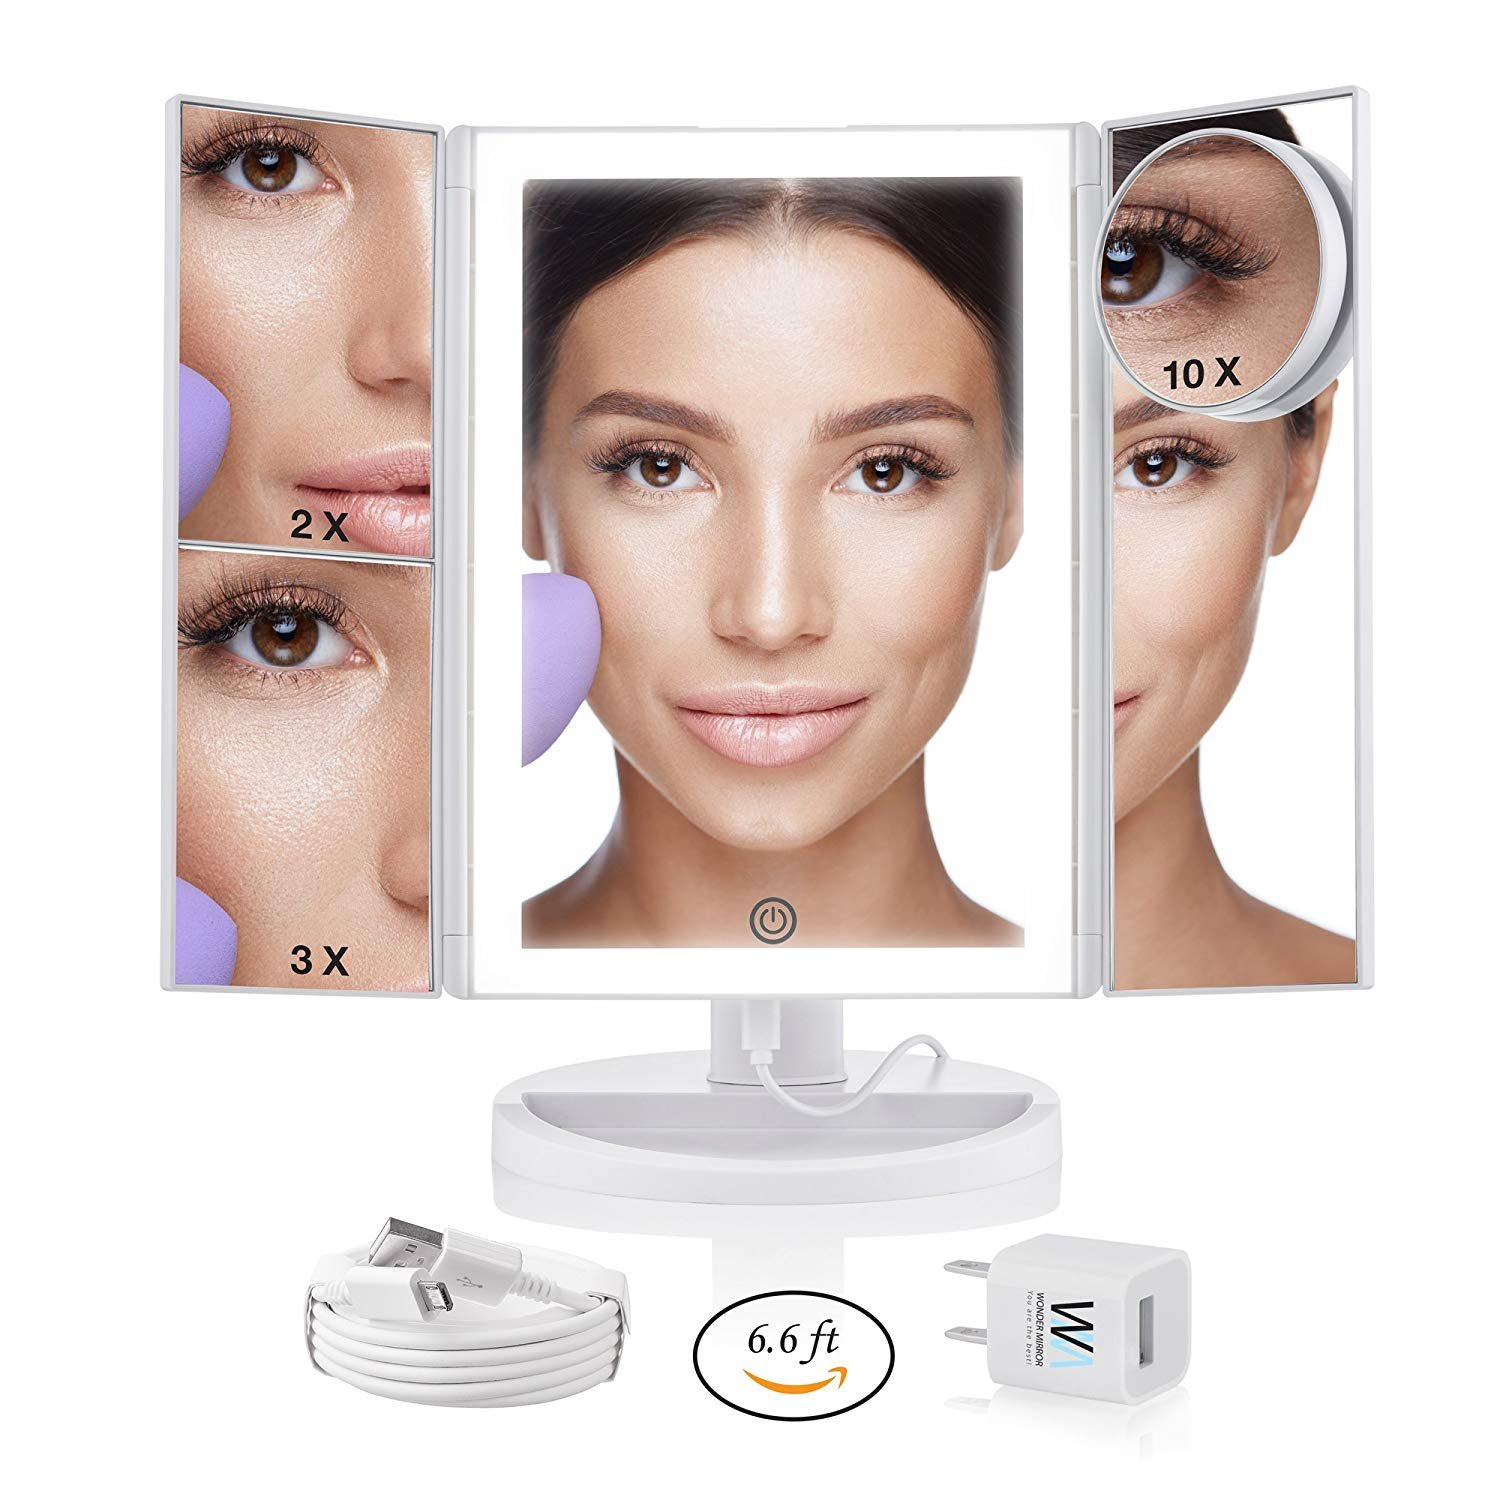 Lighted Makeup Mirror with Magnification - Trifold Desktop+10x Magnifying Cosmetic Mirrors - Vanity Makeup Mirror with Led Lights Battery or Electric - Already equipped with long 6.6 ft Cord+Charger